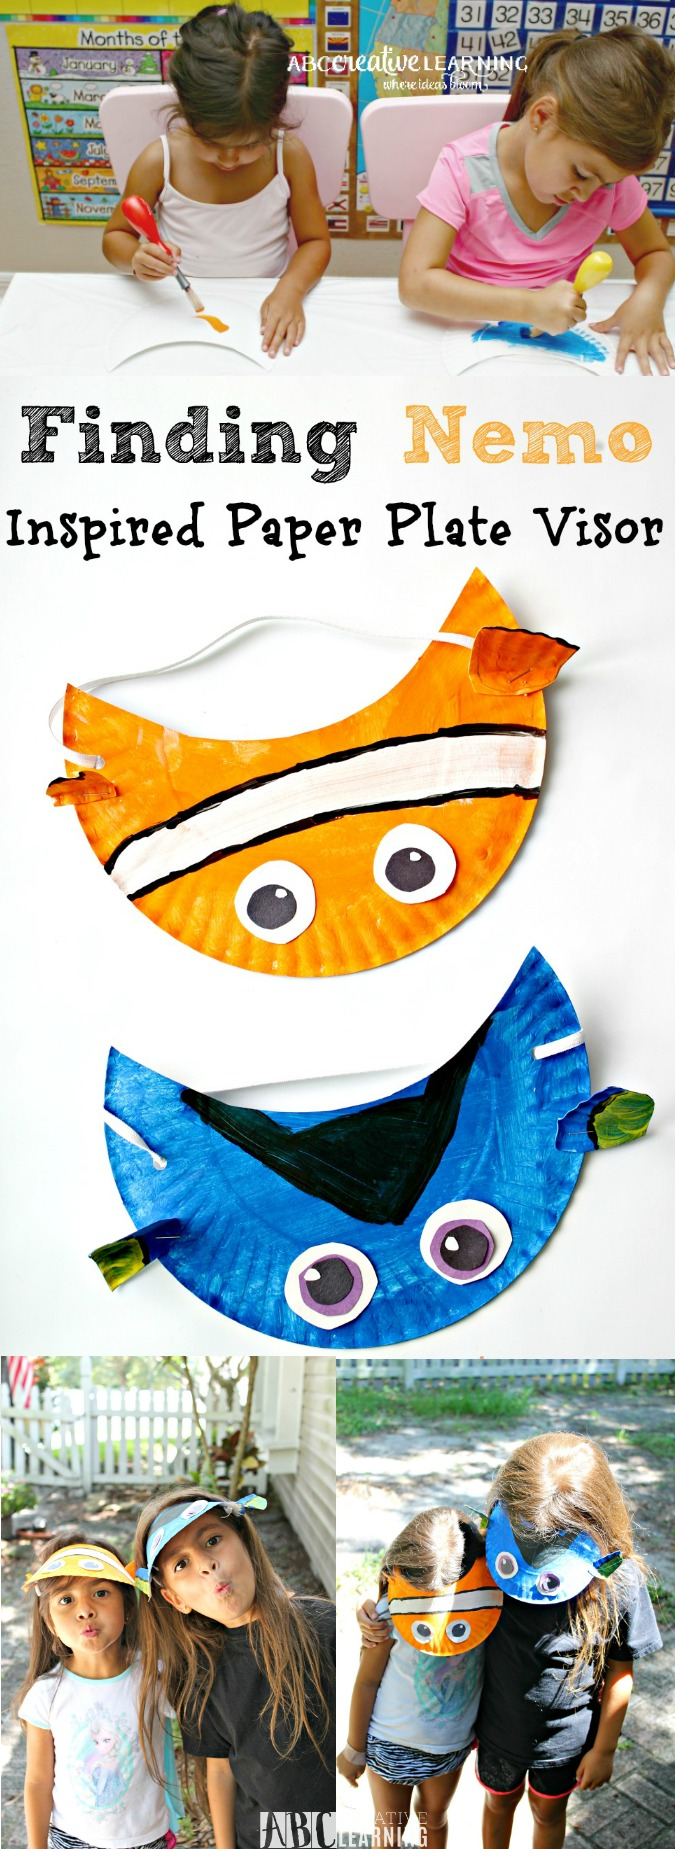 Finding Nemo Inspired Paper Plate Visor Hat for Kids - abccreativelearning.com